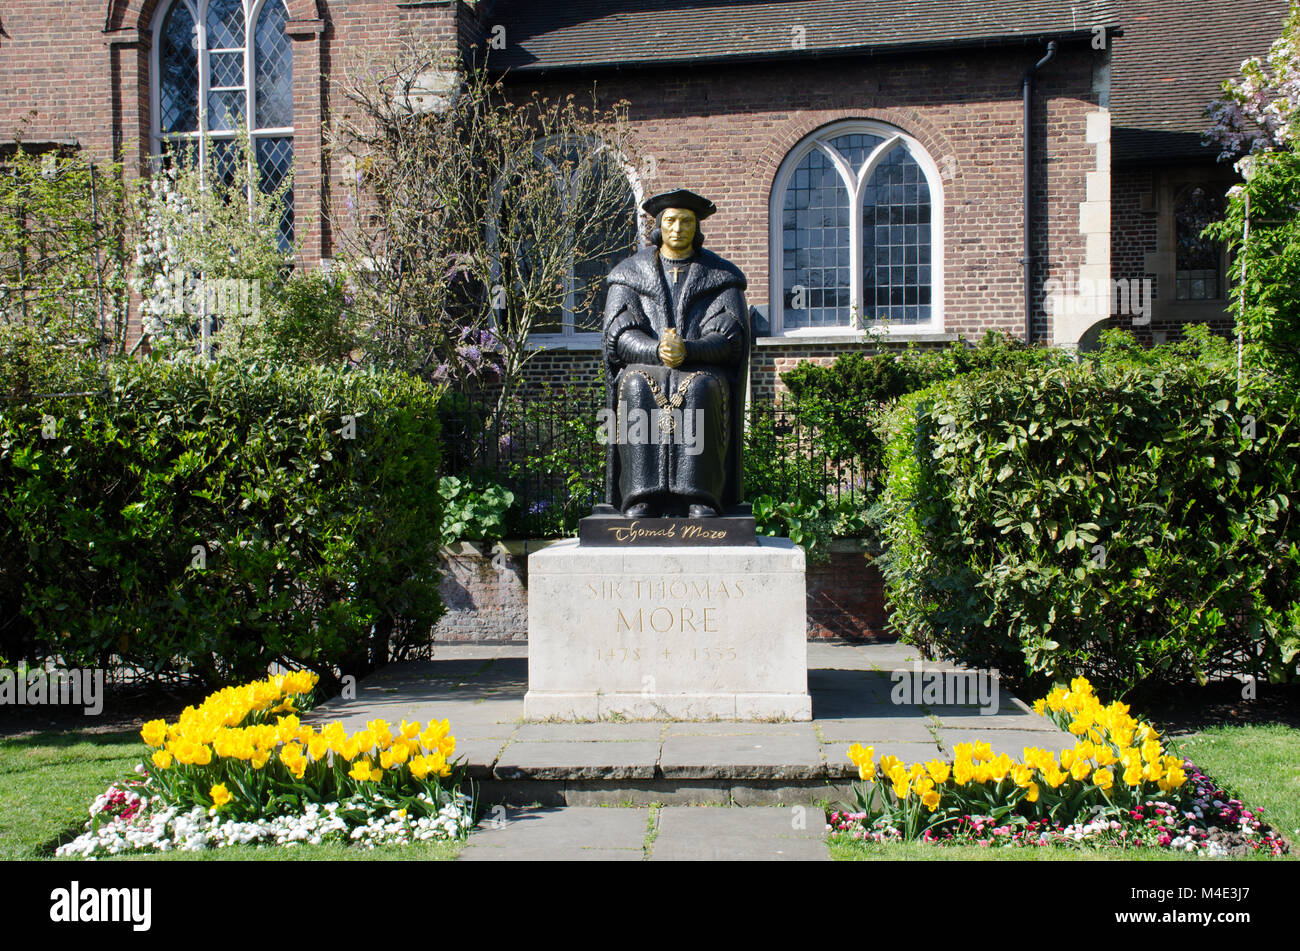 Statue of Sir Thomas Moore outside Chelsea Old church - Stock Image